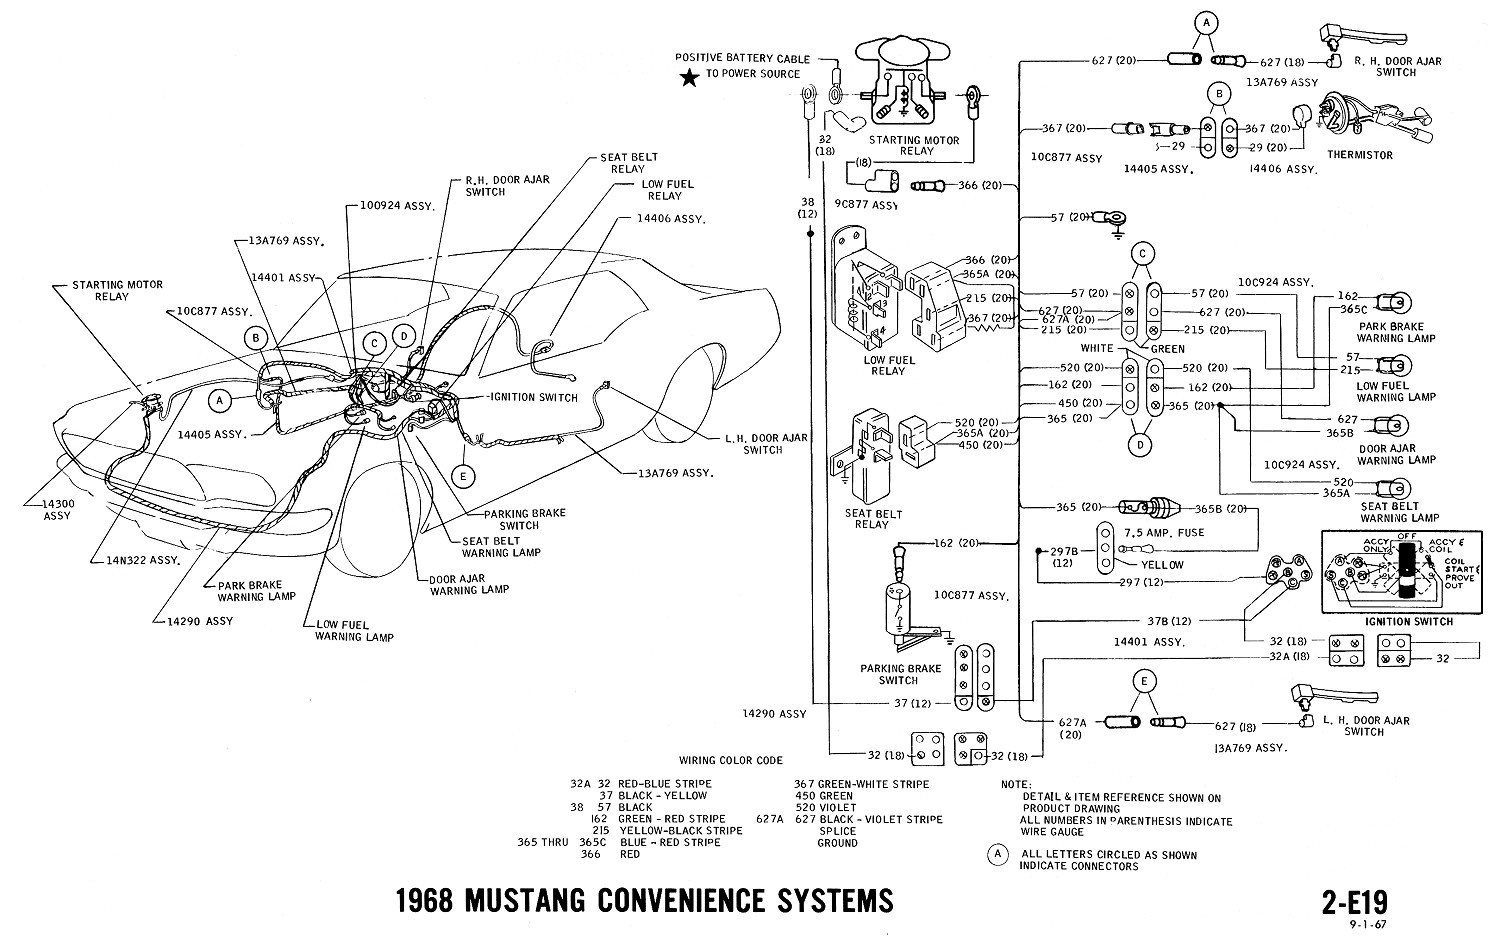 351 windsor wiring diagram general electric stove 1985 corvette heater hose routing 1969 mustang control